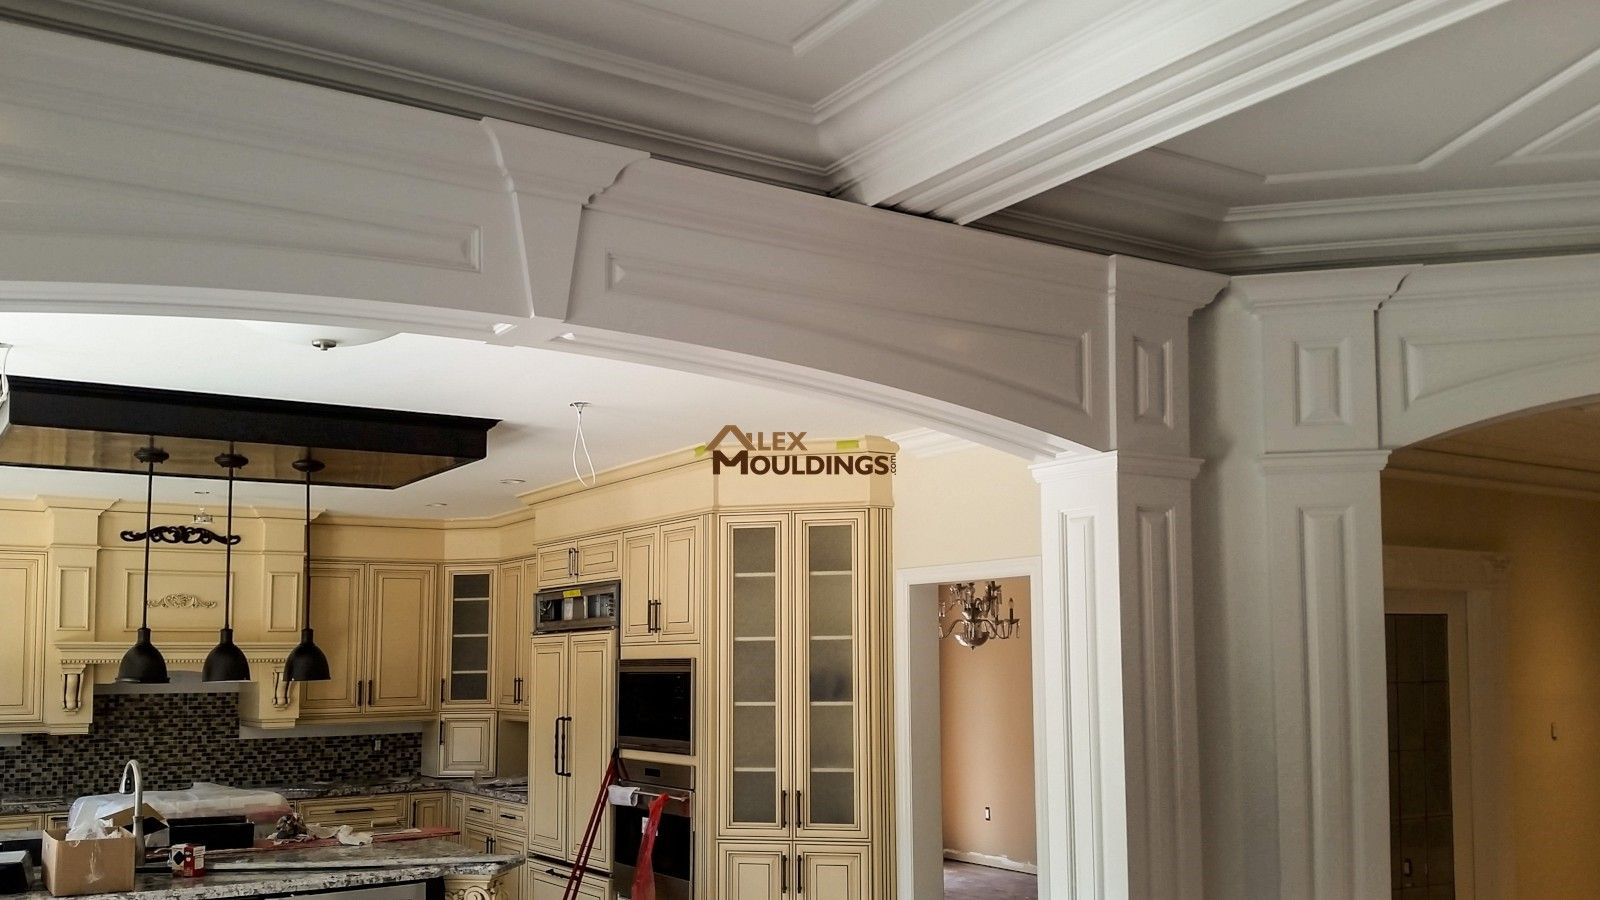 Cased Door Opening Raised Panel Design Millwork Archways - Cornice crown moulding toronto wainscoting coffered ceiling